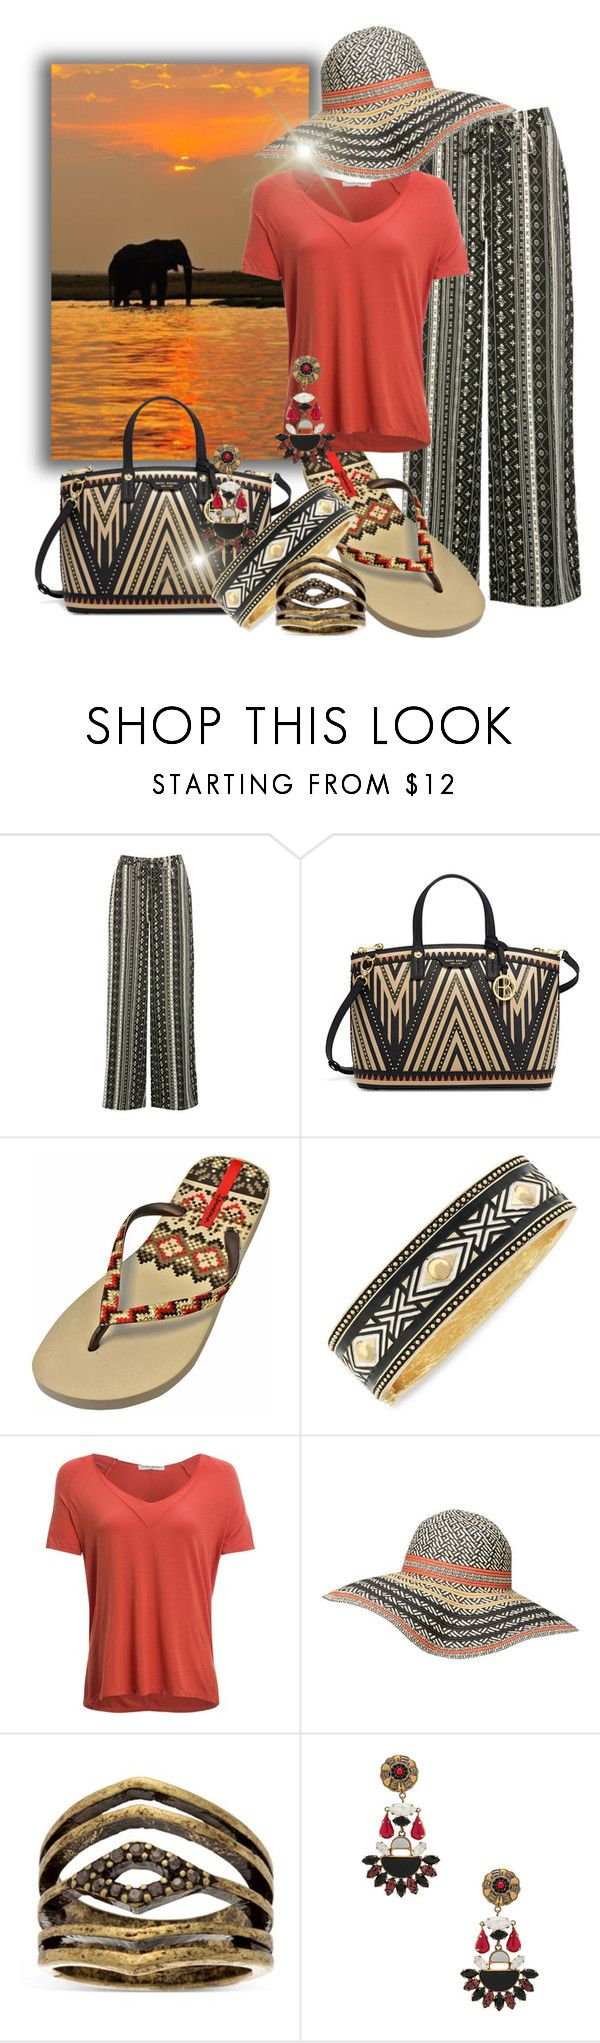 """""""Tribal"""" by fashion-film-fun ❤ liked on Polyvore featuring M&Co, Henri Bendel, IPANEMA, Jessica Simpson, Project Social T, Dorothy Perkins, Steve Madden and Etro"""